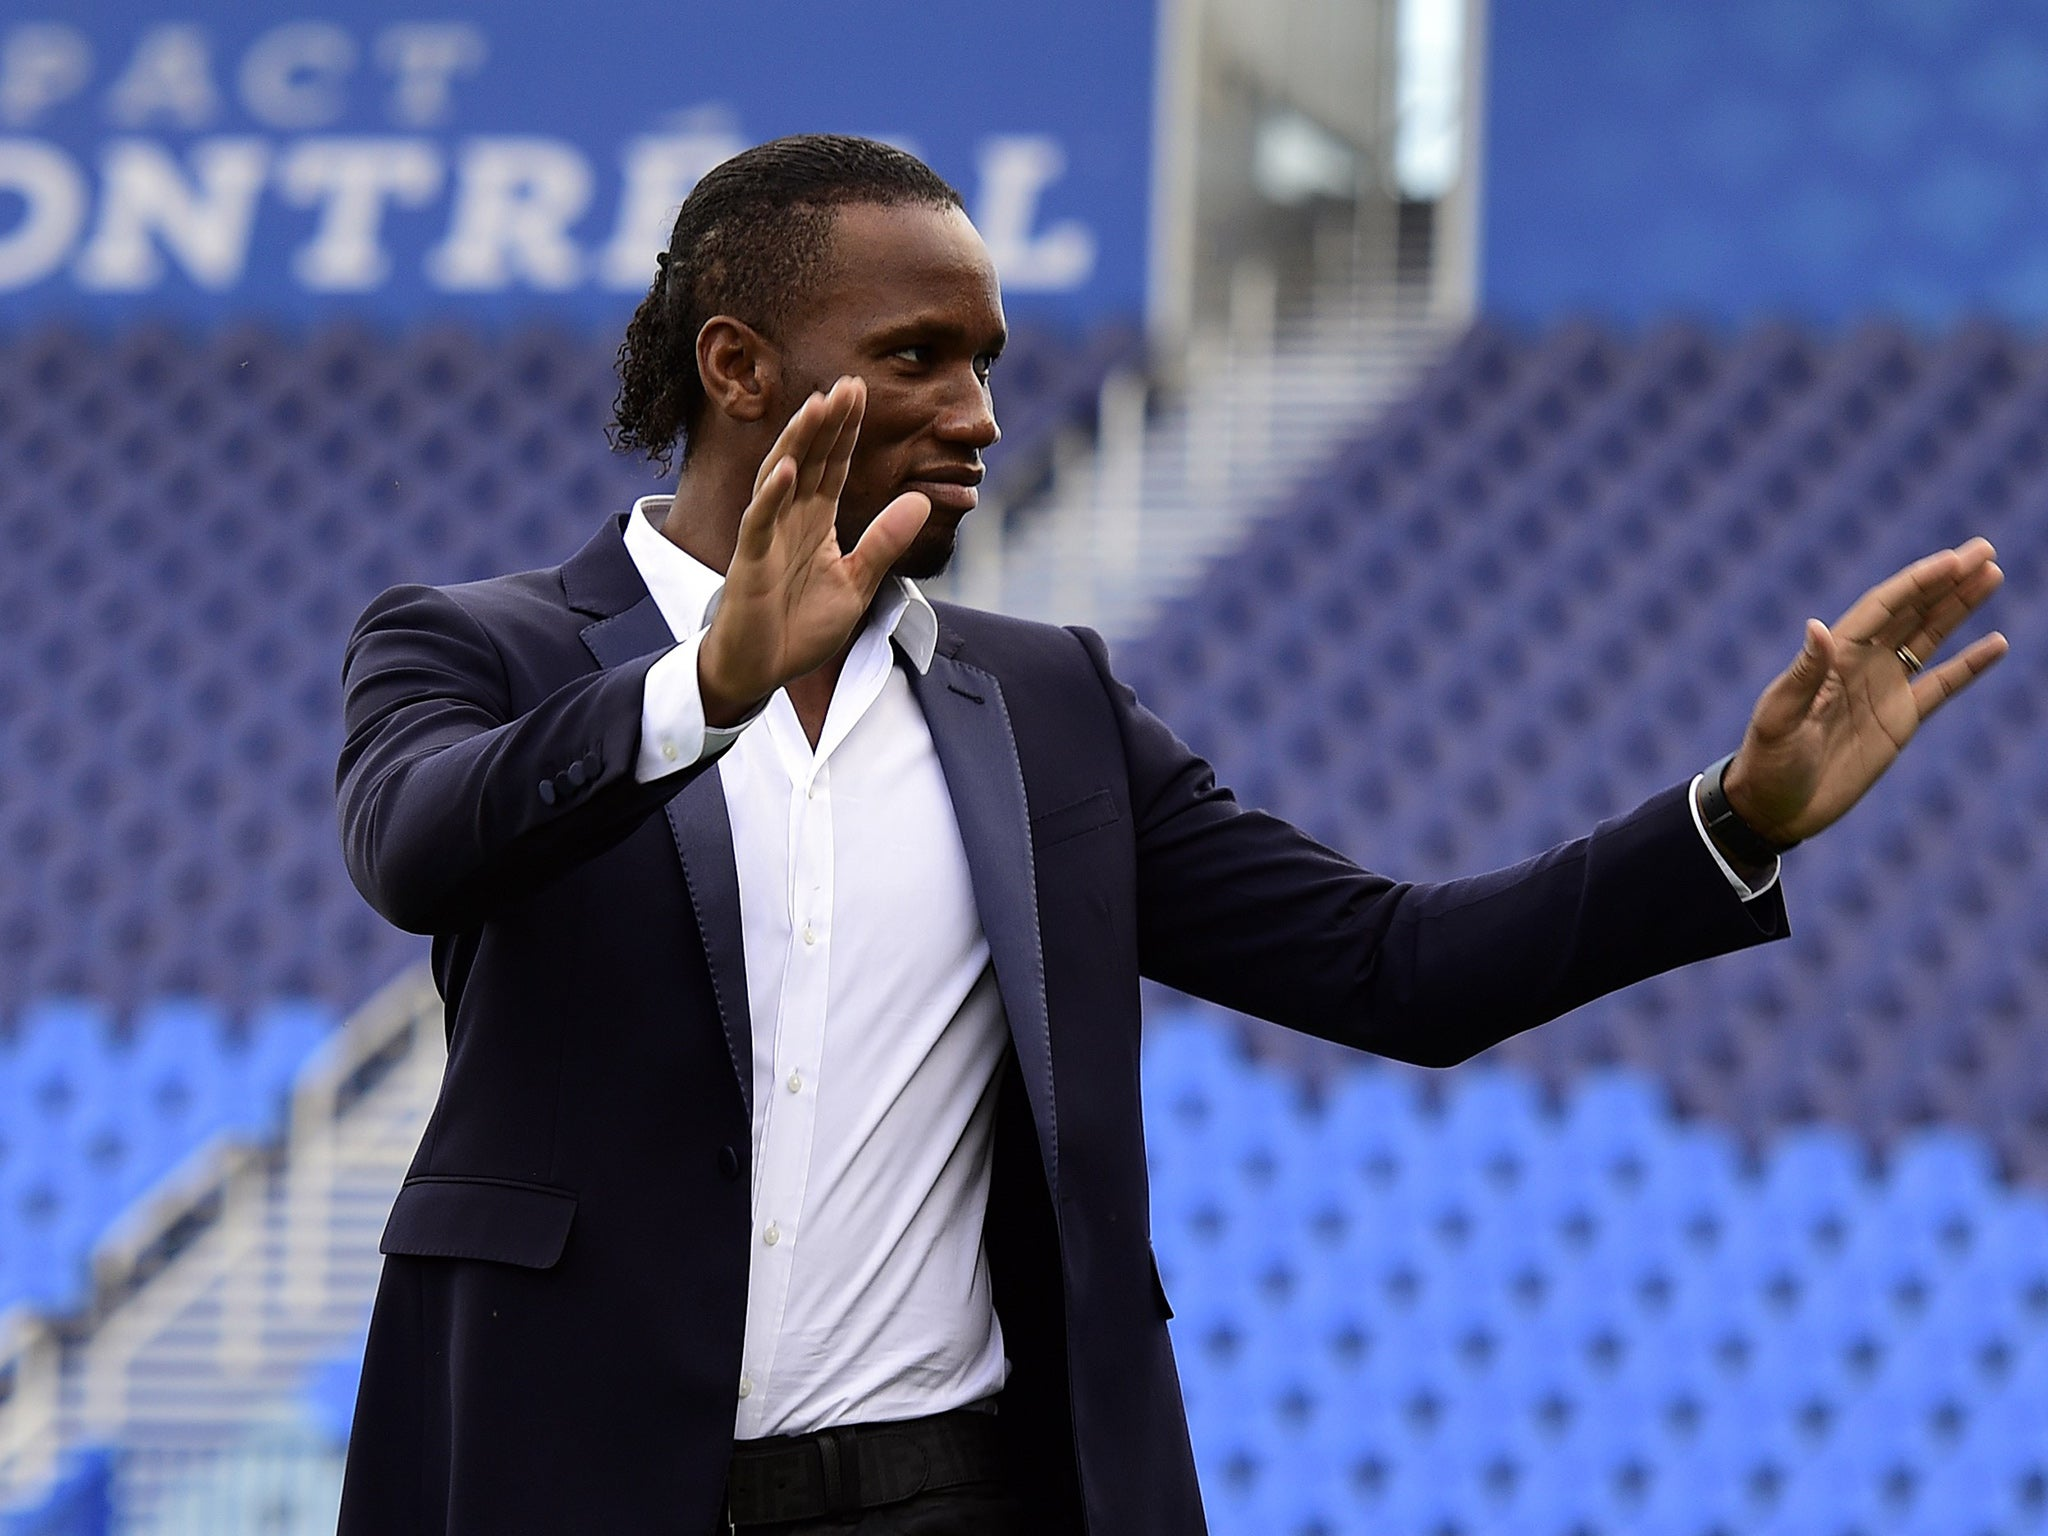 Didier Drogba backs Arsenal to win Premier League because 'they have got Petr Cech', not Chelsea